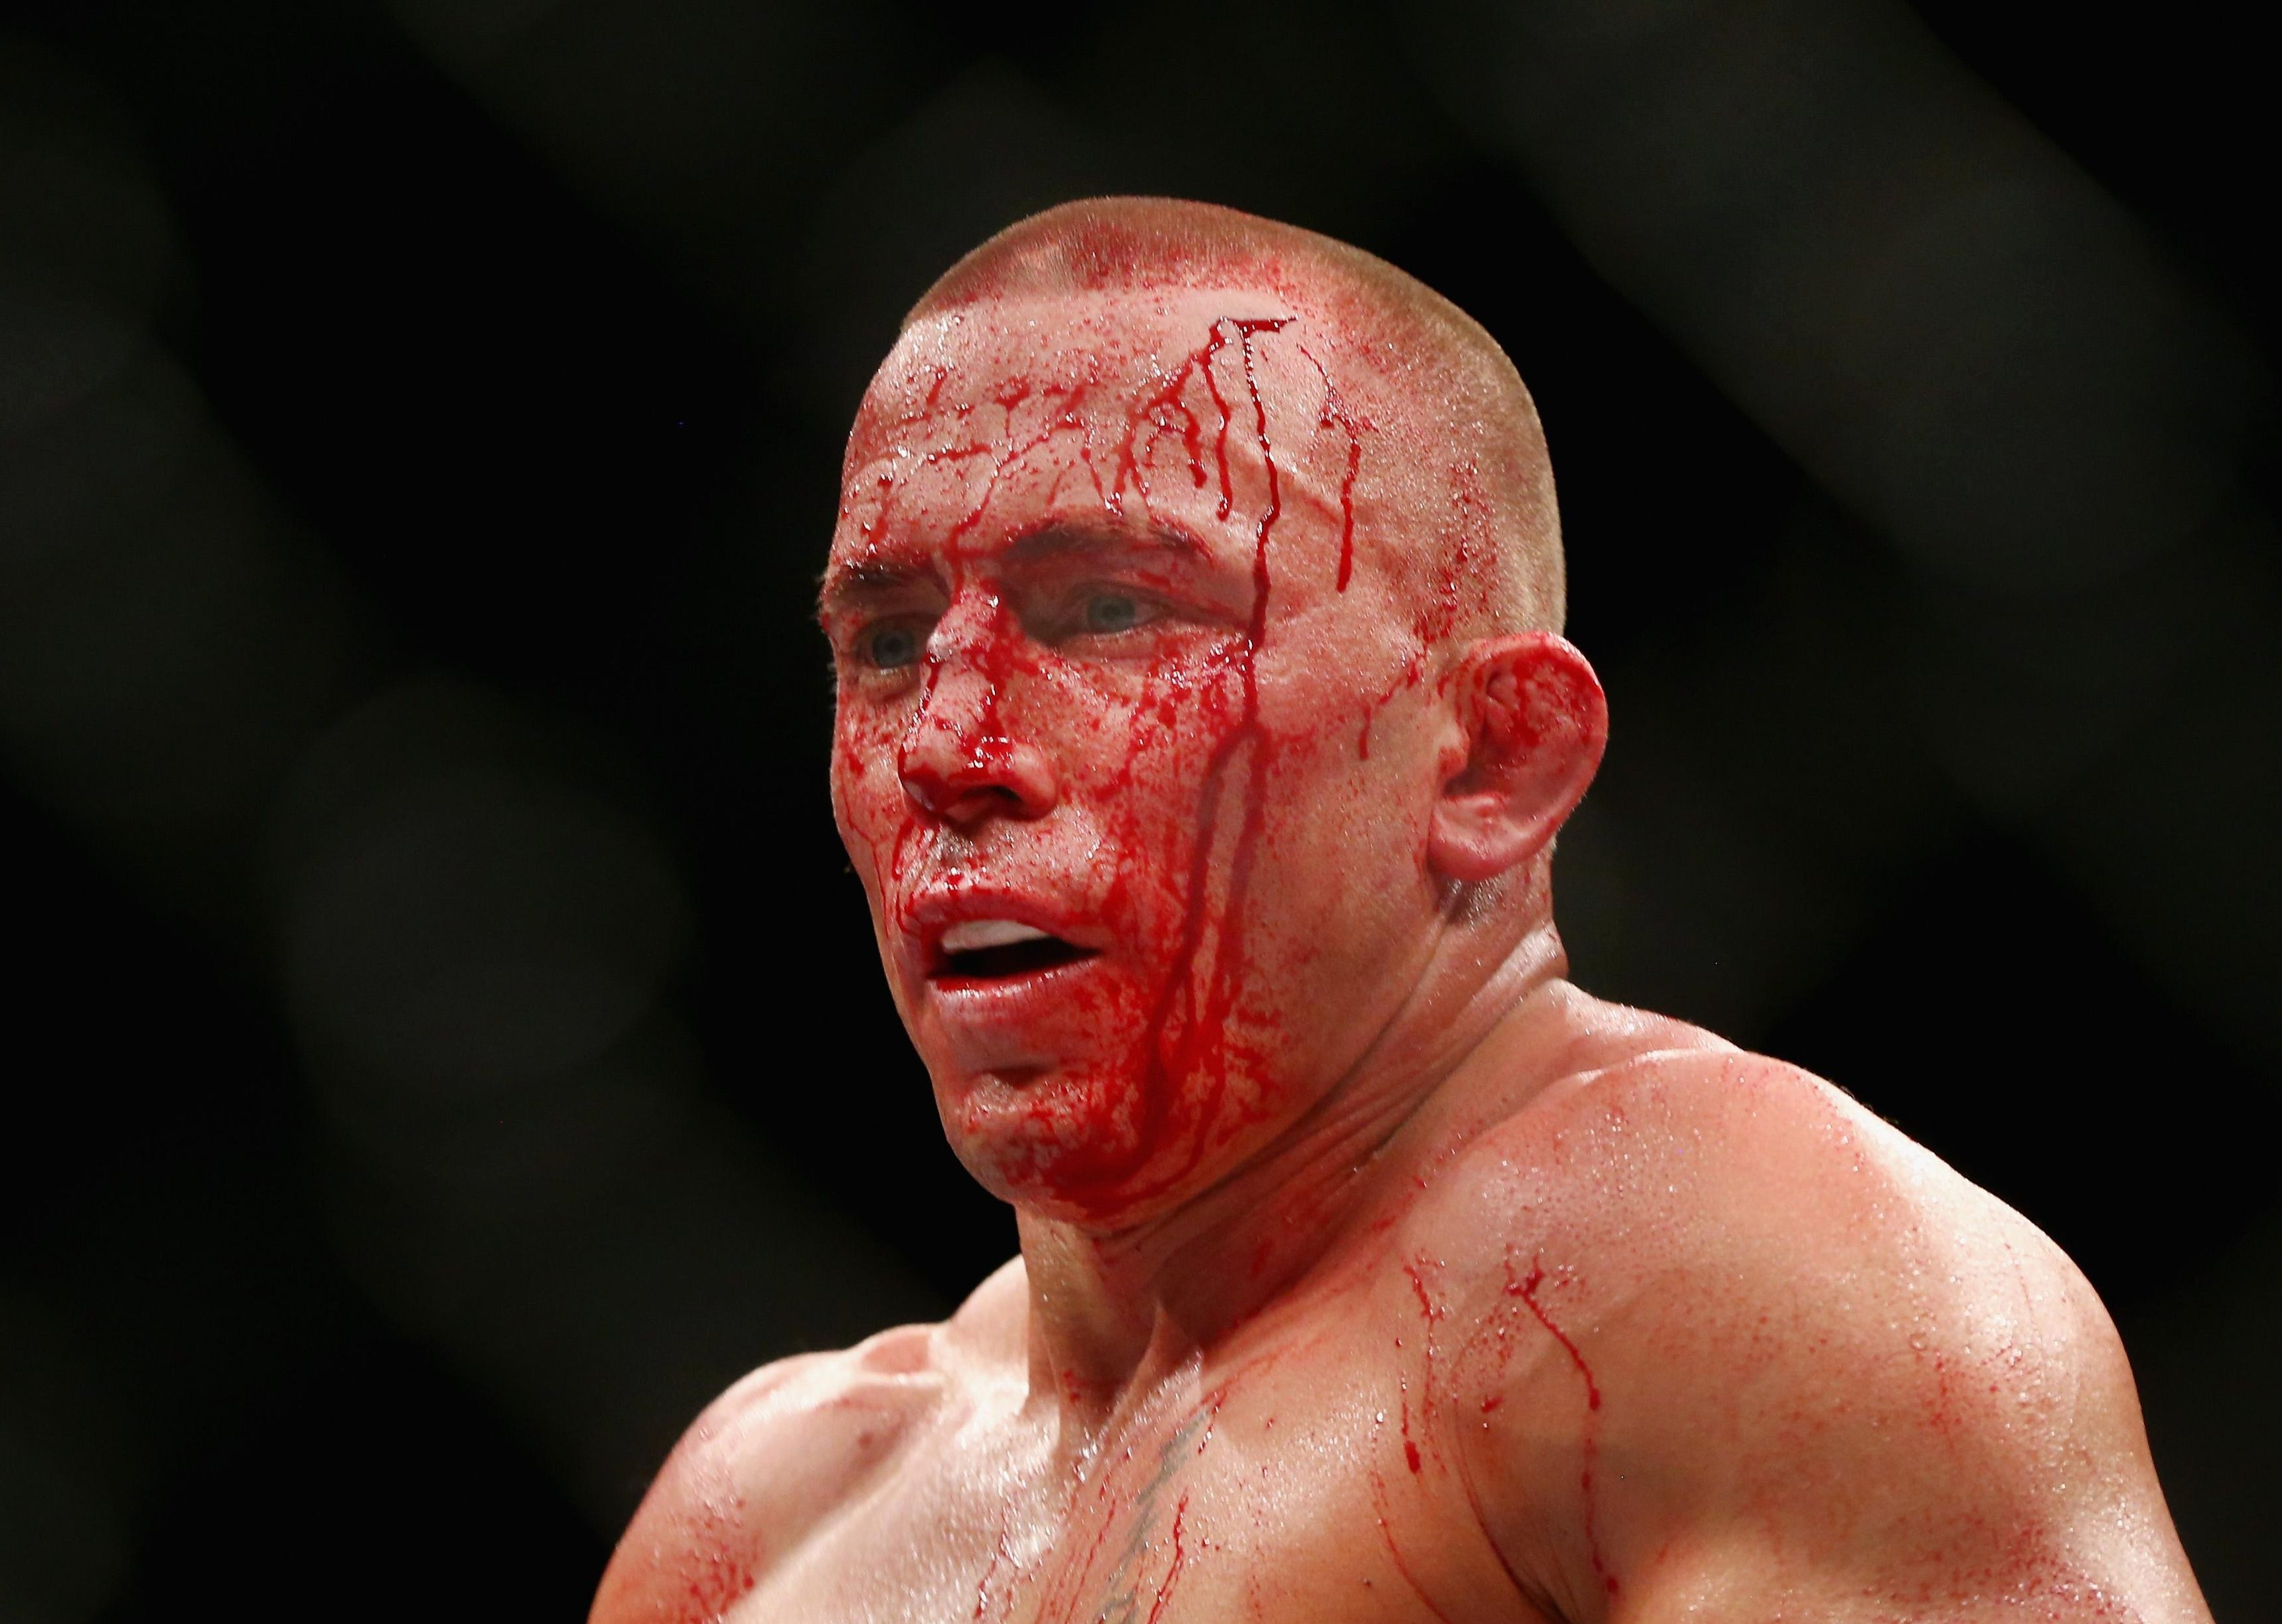 St-Pierre's UFC career appears to be over as the Canadian nurses a debilitating illness